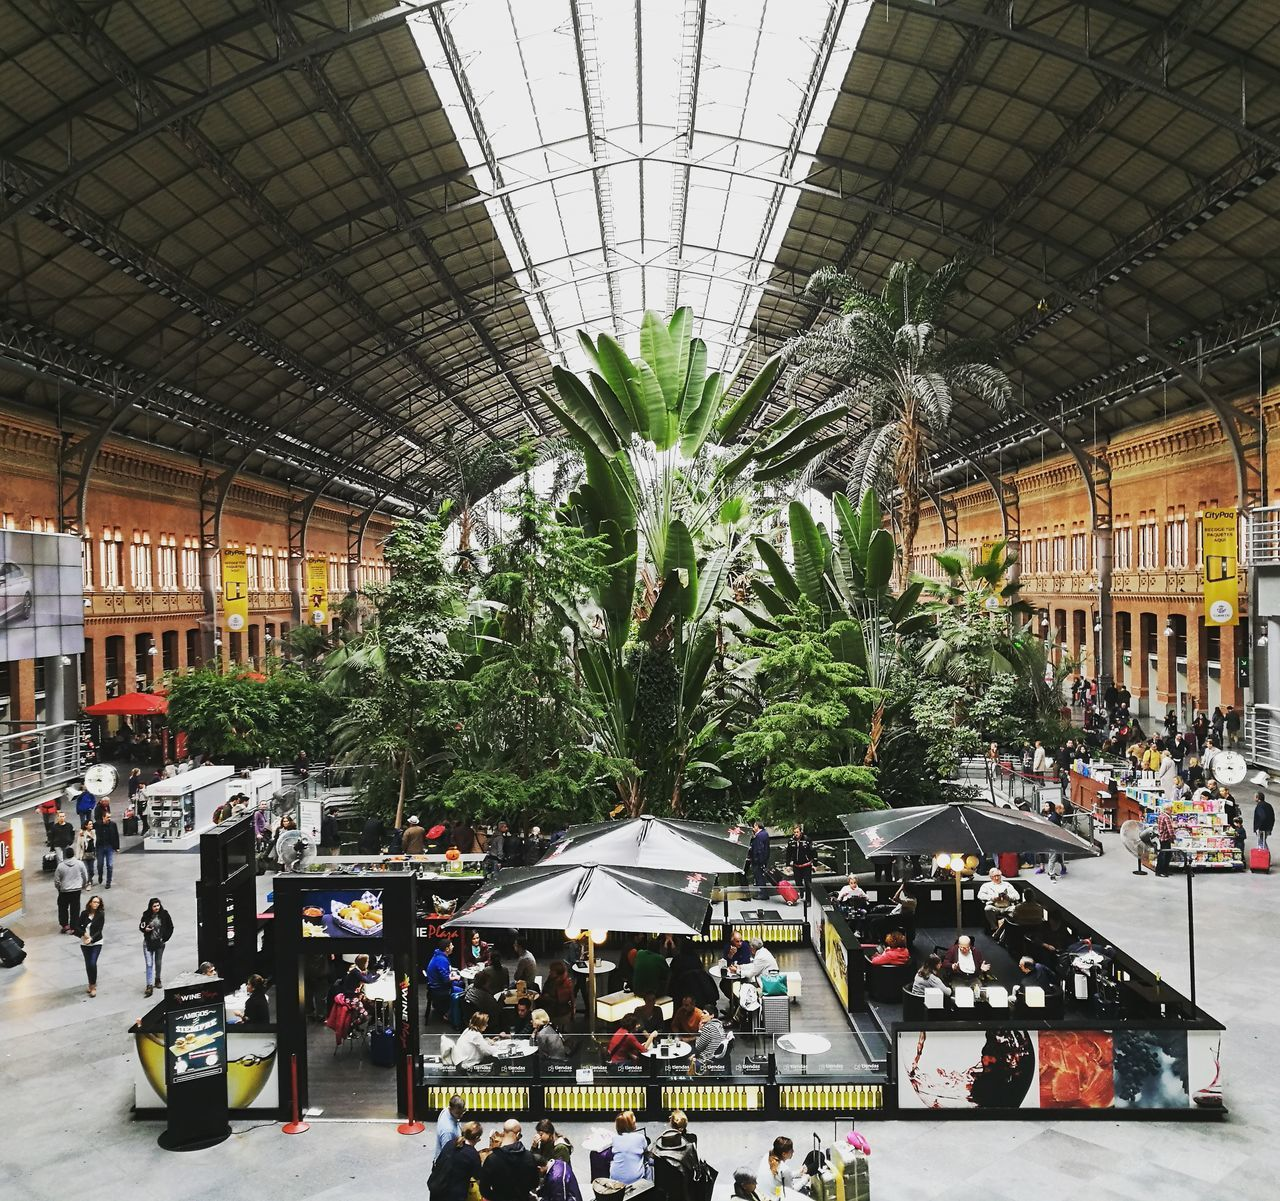 Architecture Atocha Atocha Renfe Botanical Gardens Built Structure Day Growth Indoors  Large Group Of People People Railroad Station Train Train Station Tree